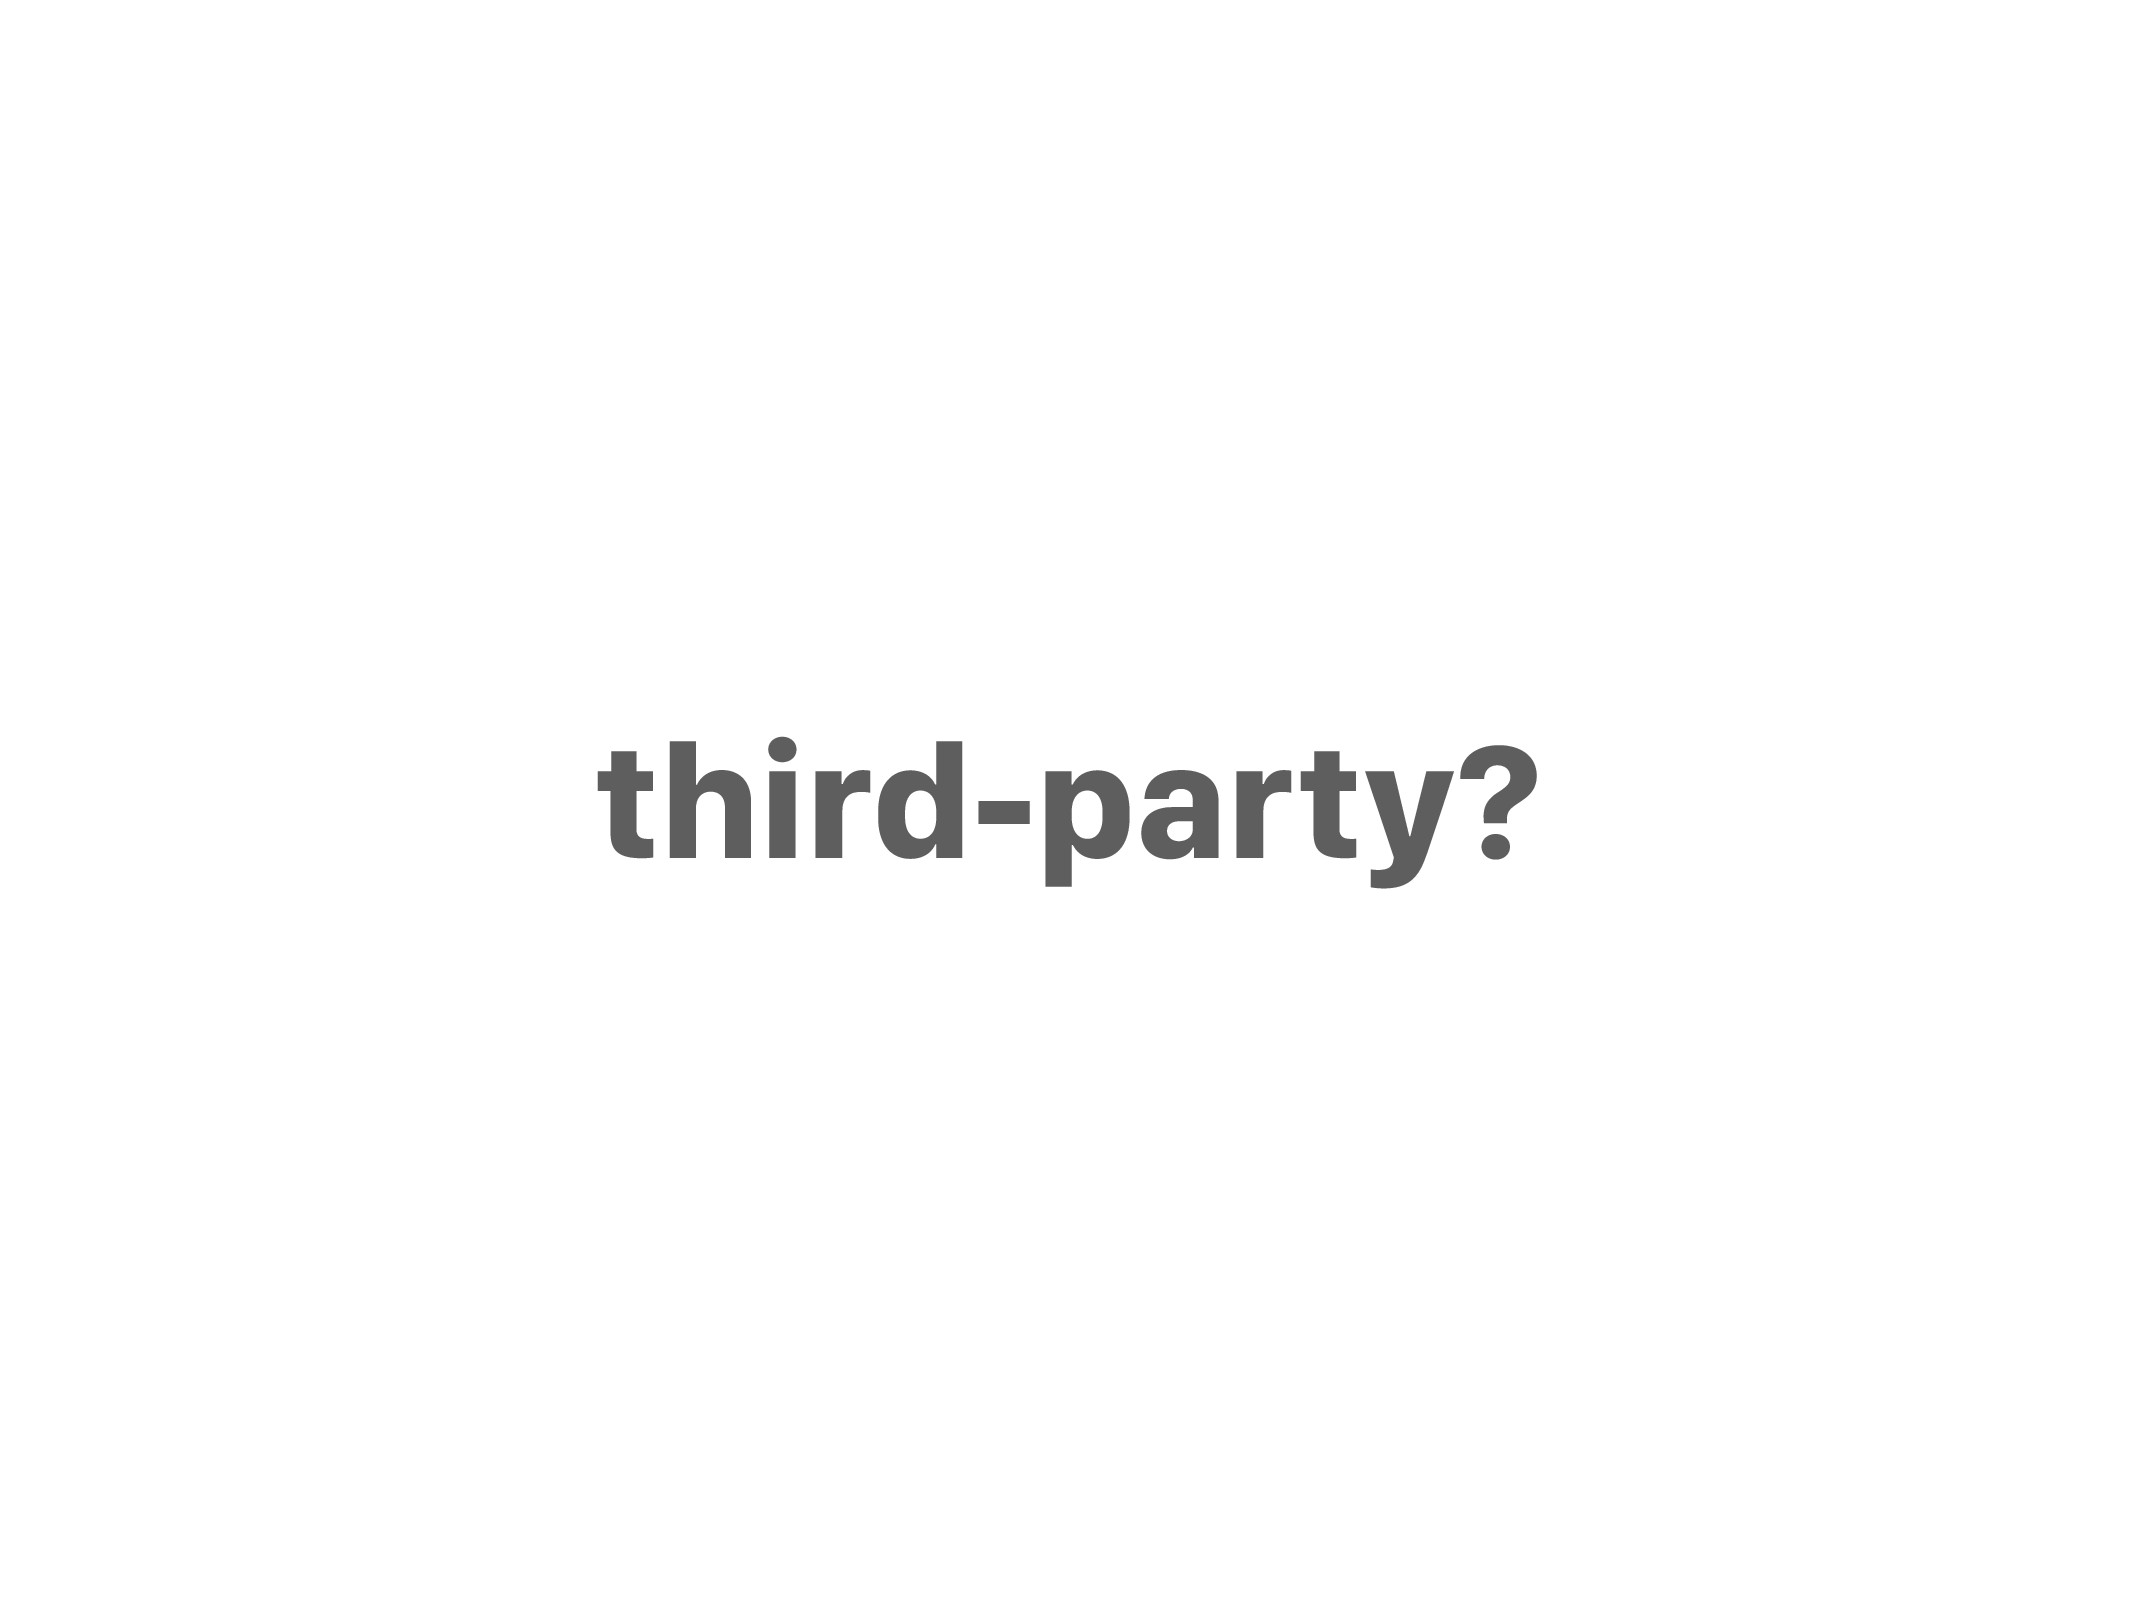 third-party?